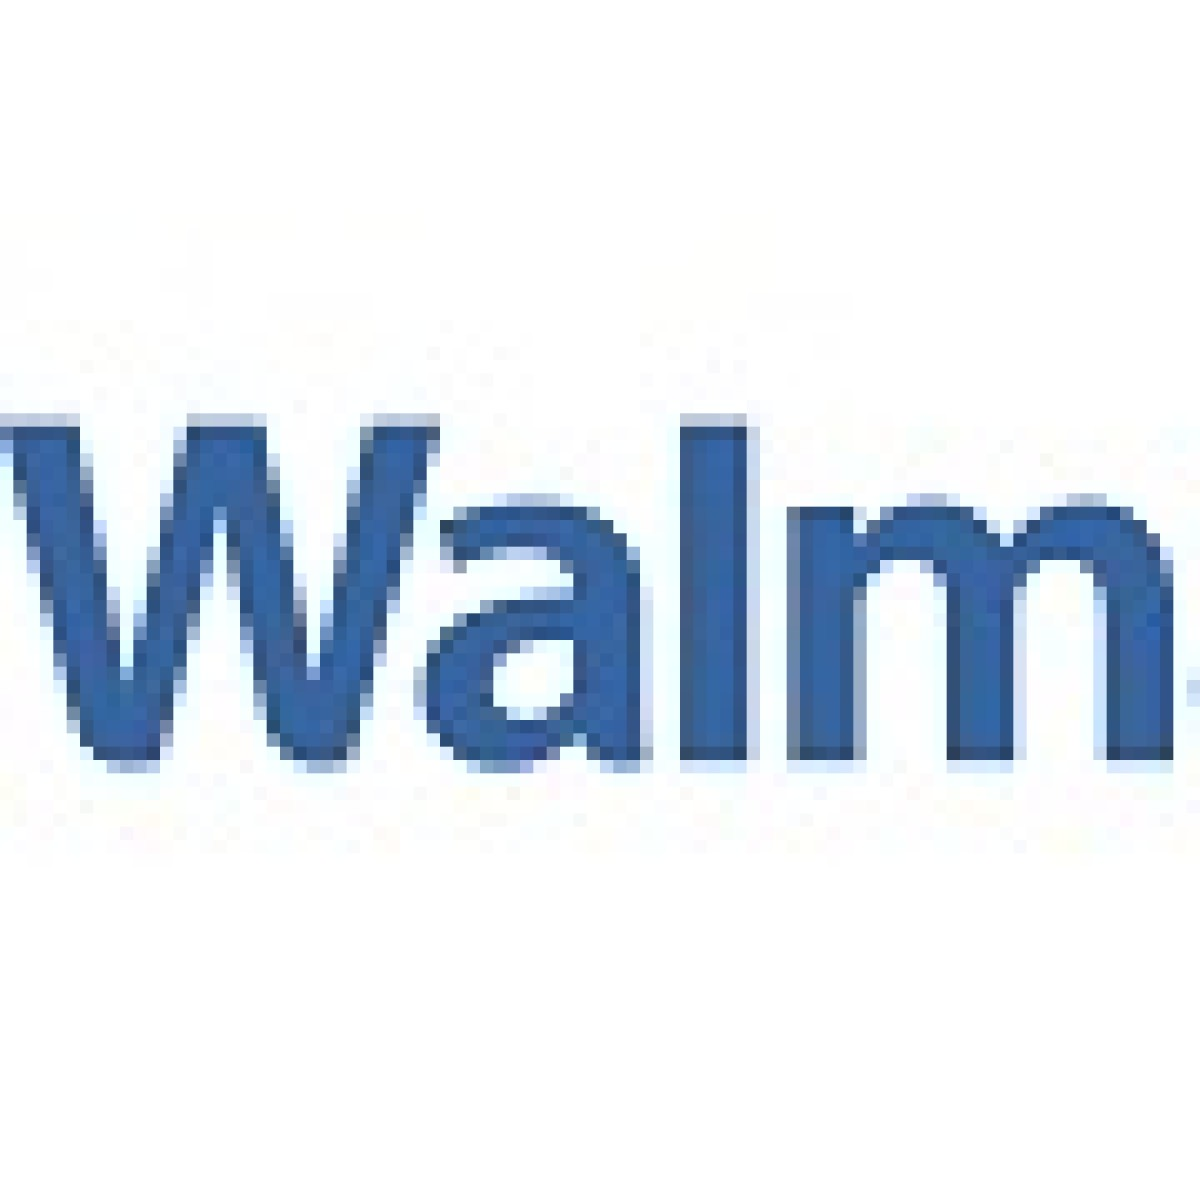 Walmart Introduces Exclusive Money Transfer Service, Cuts